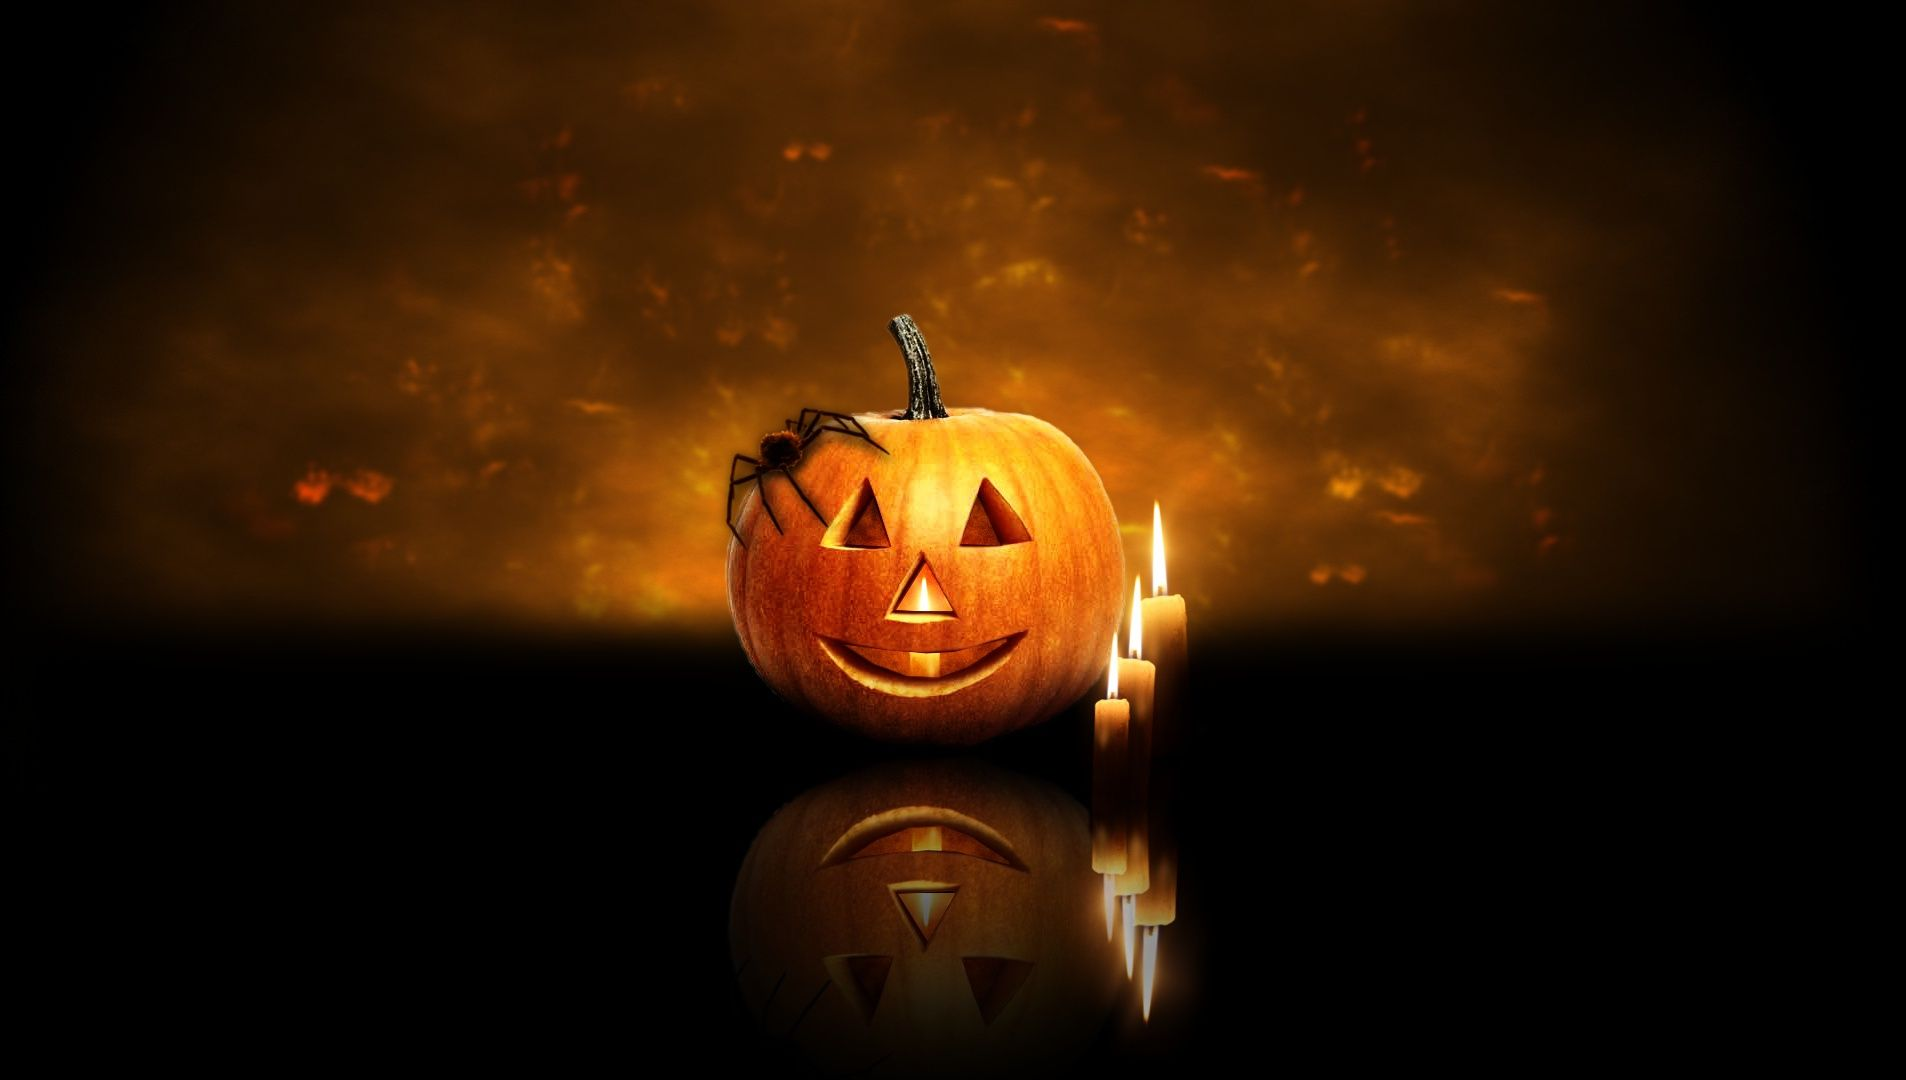 Halloween Pumpkin Wallpaper Hd.Download 50 Cute And Happy Halloween Wallpapers Hd For Free